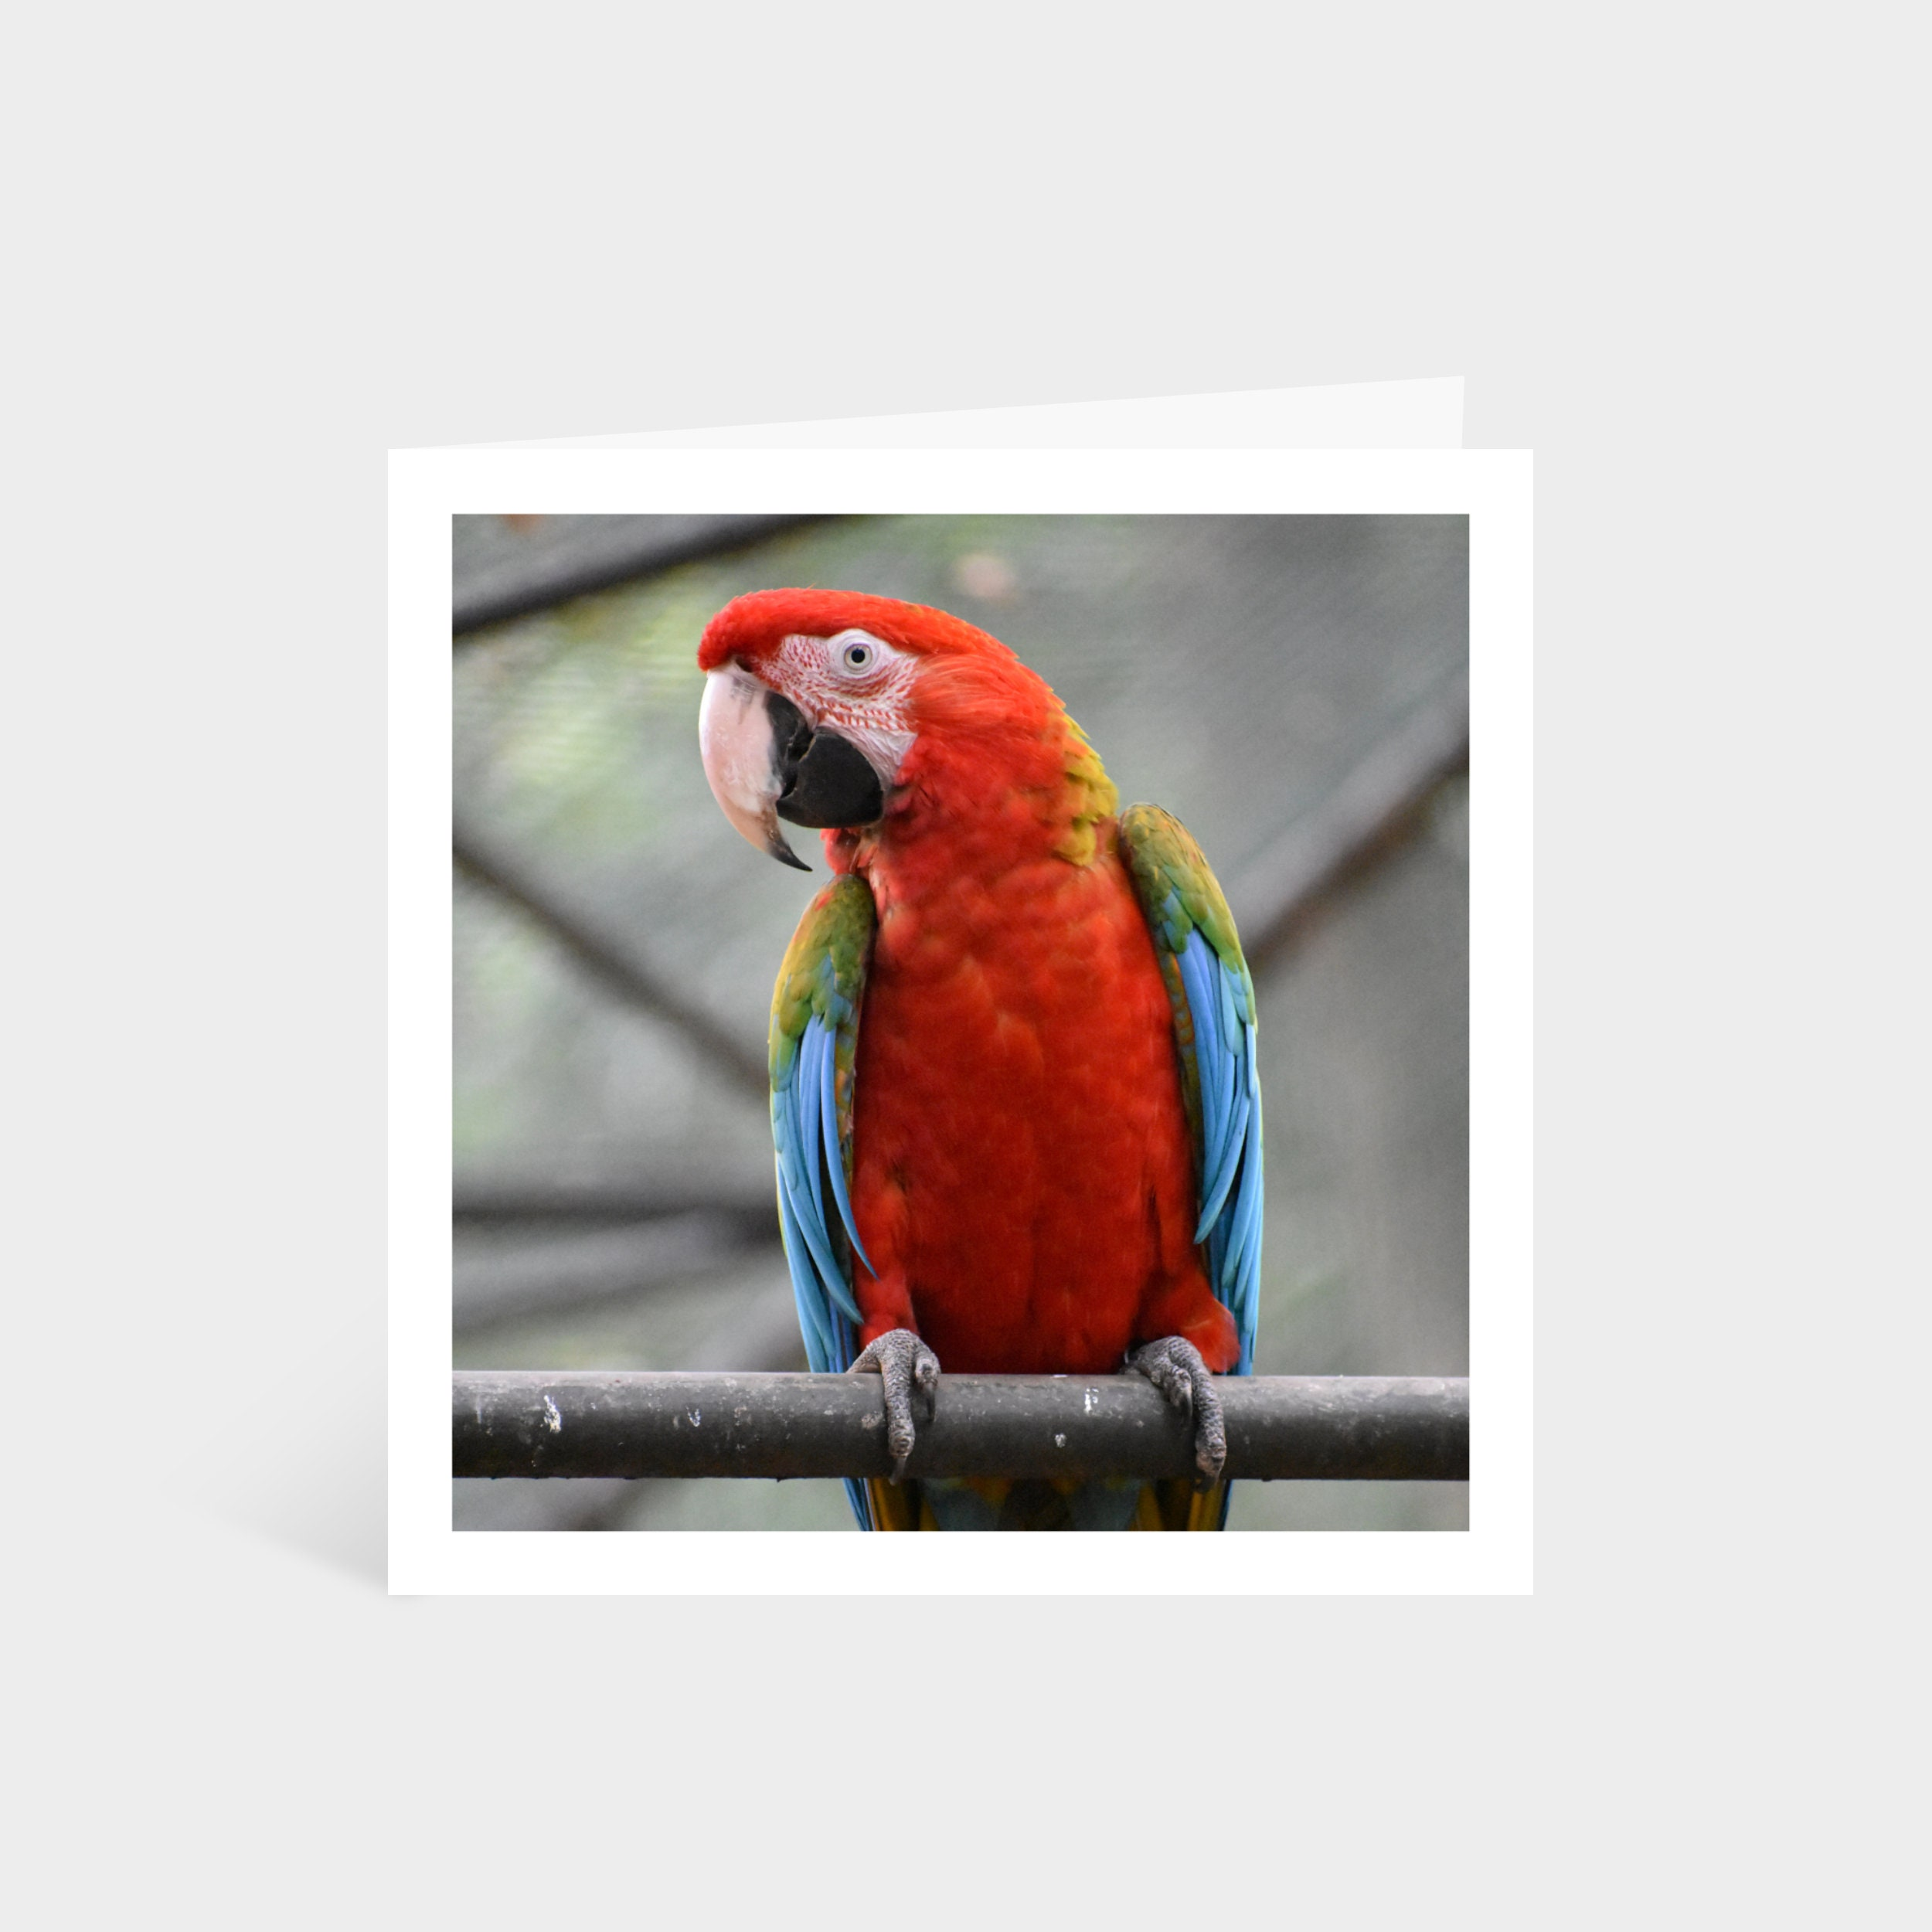 Standing square card with a close-up photo of a brightly coloured macaw parrot